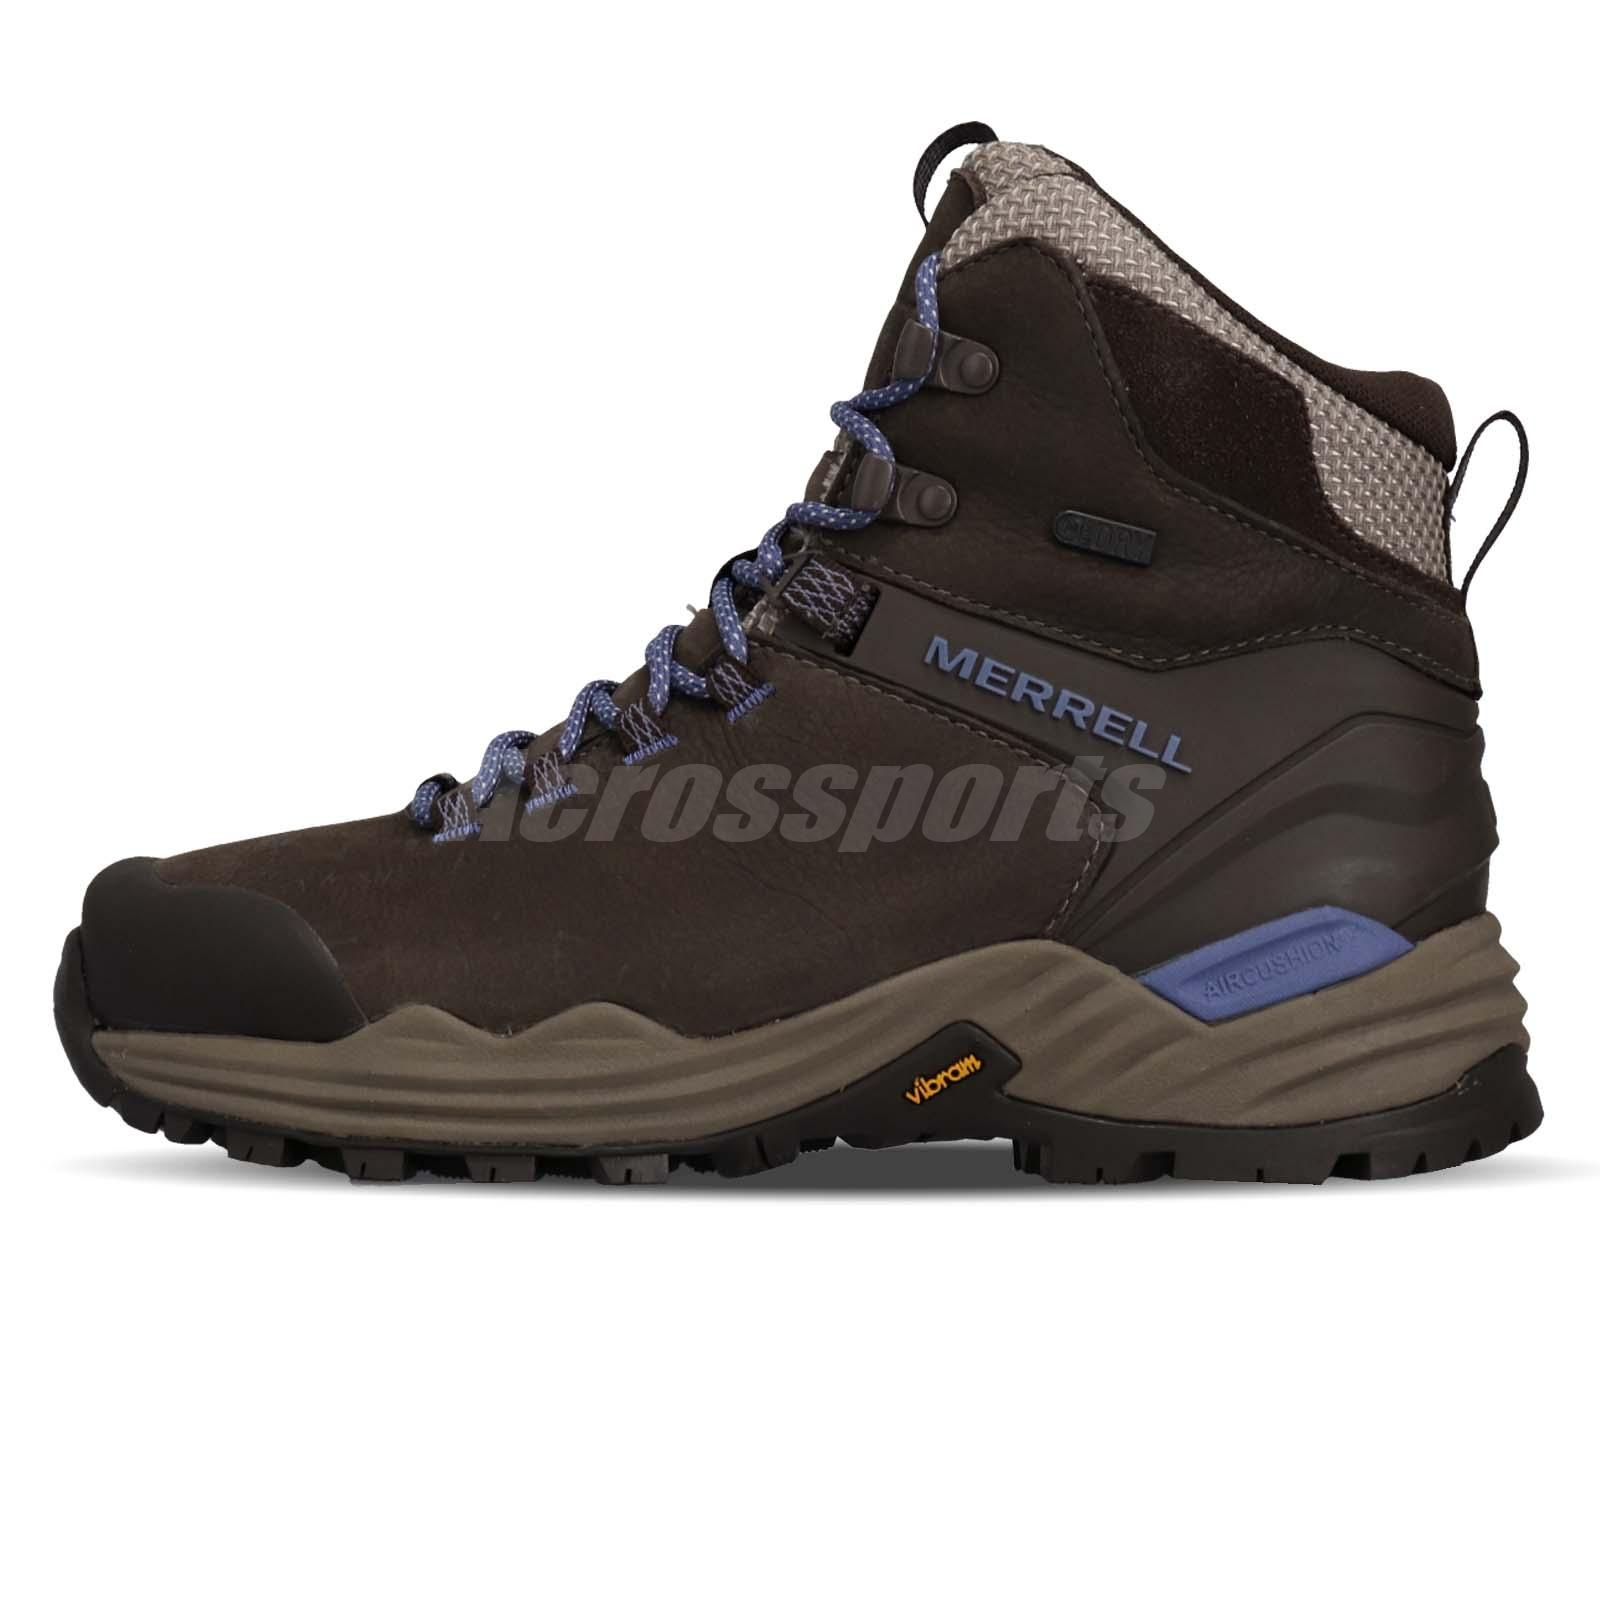 0f981f6528 Details about Merrell Phaserbound 2 Tall Waterproof Boulder Women Outdoors  Shoes Boots J52488